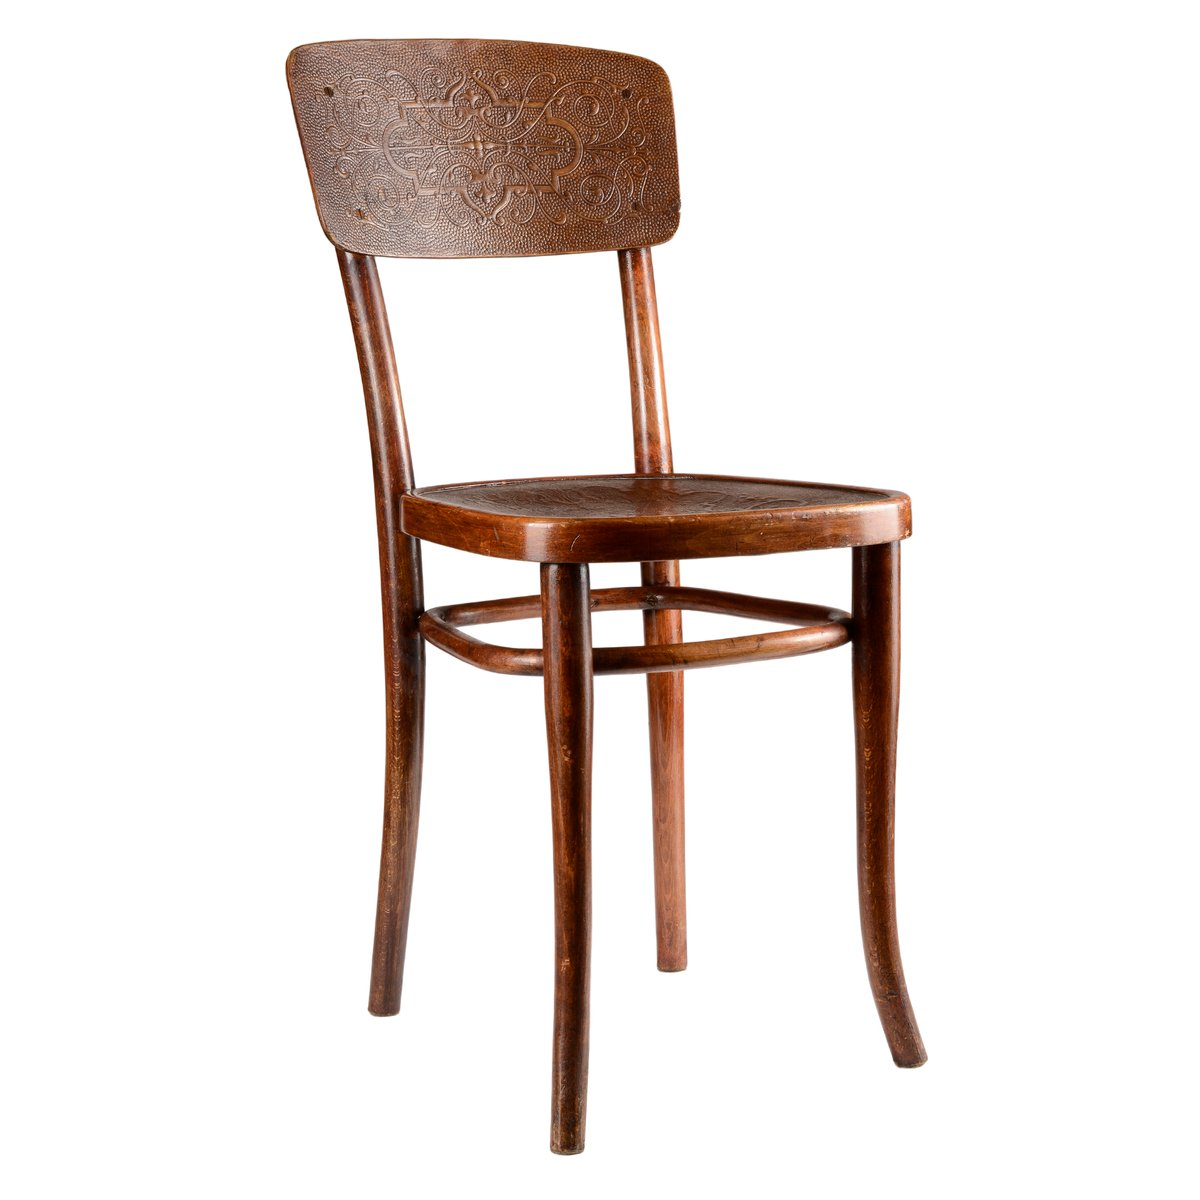 Incroyable Printed U0026 Decorated Wooden Chair From Gebrüder Thonet Vienna GmbH, 1920s